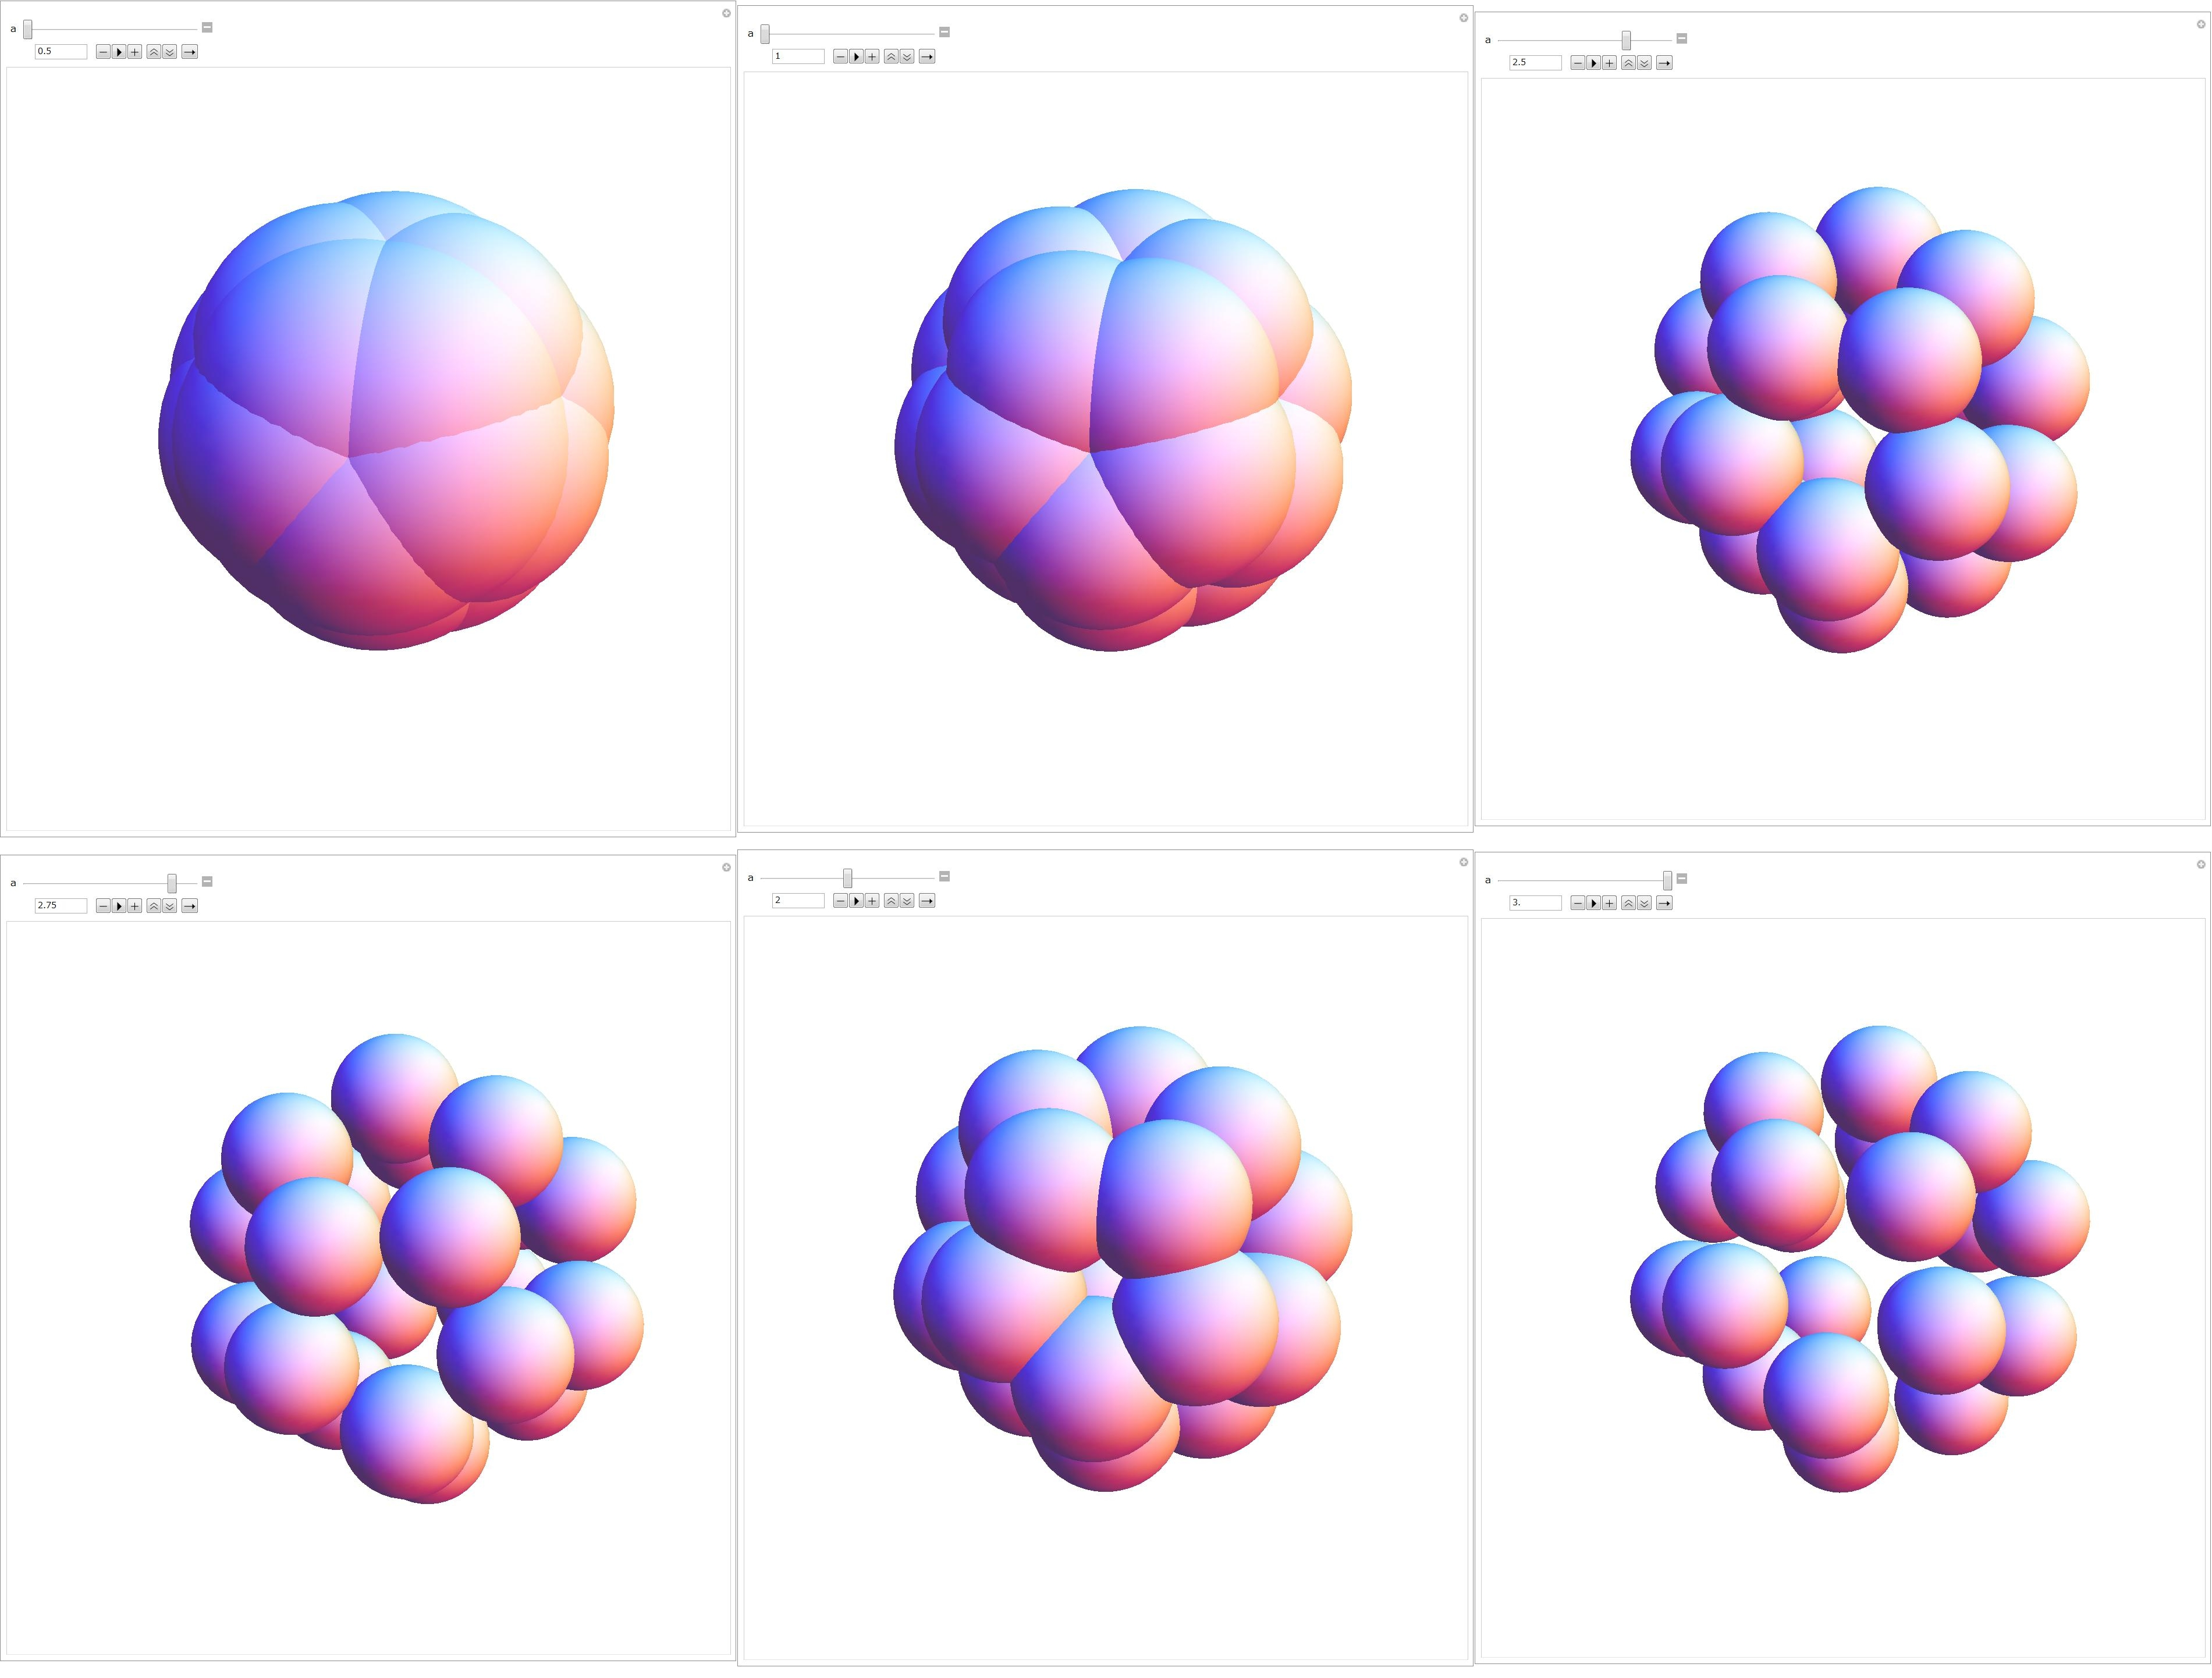 Dodecahedron of spheres photo